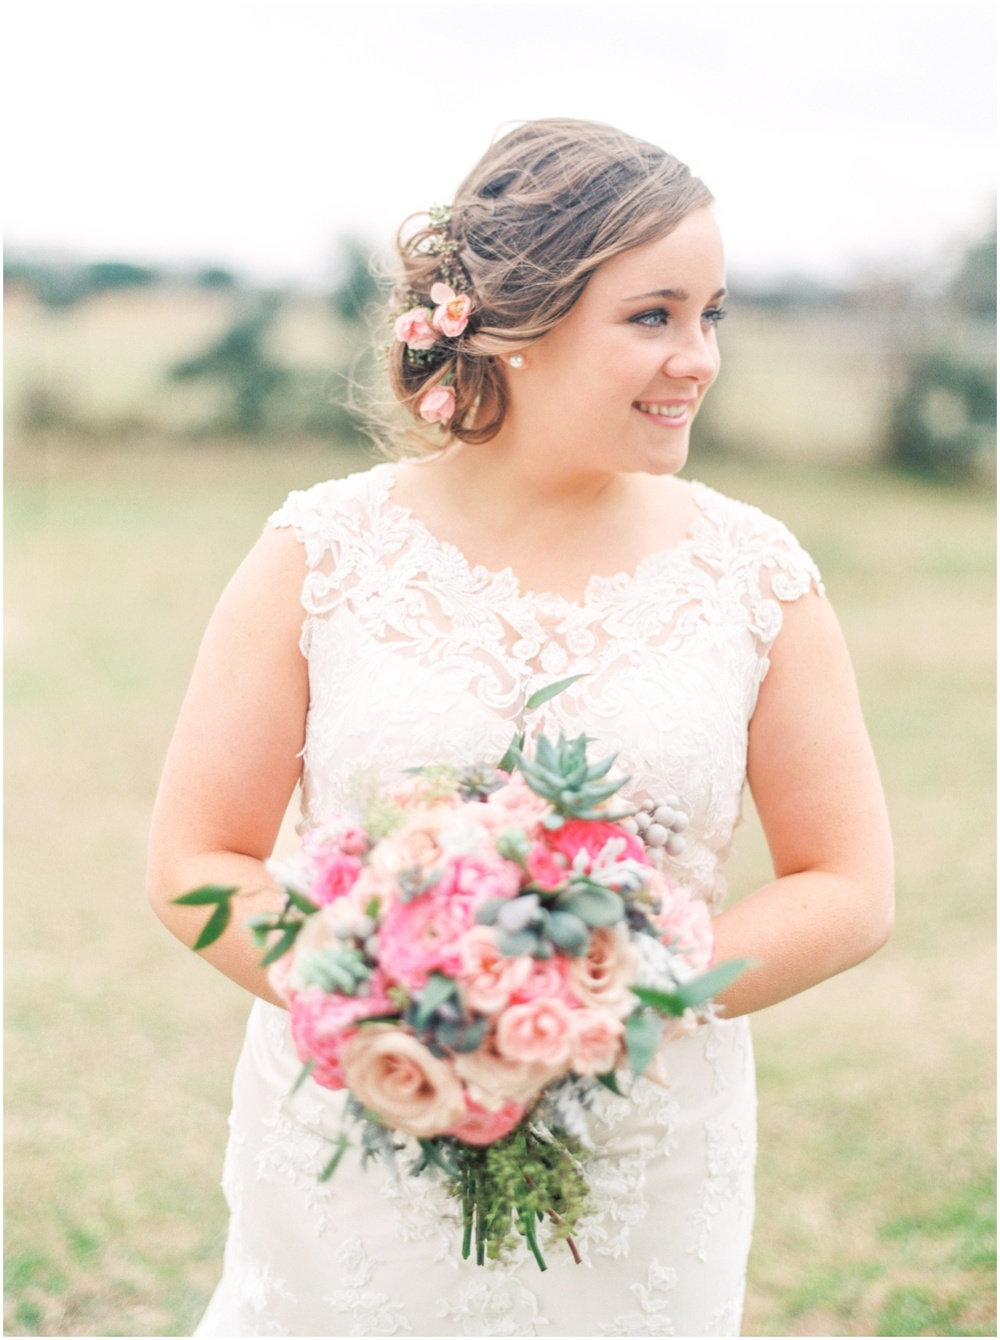 Sarah Best Photography - Claire's Bridals - The Amish Barn at Edge-28_STP.jpg